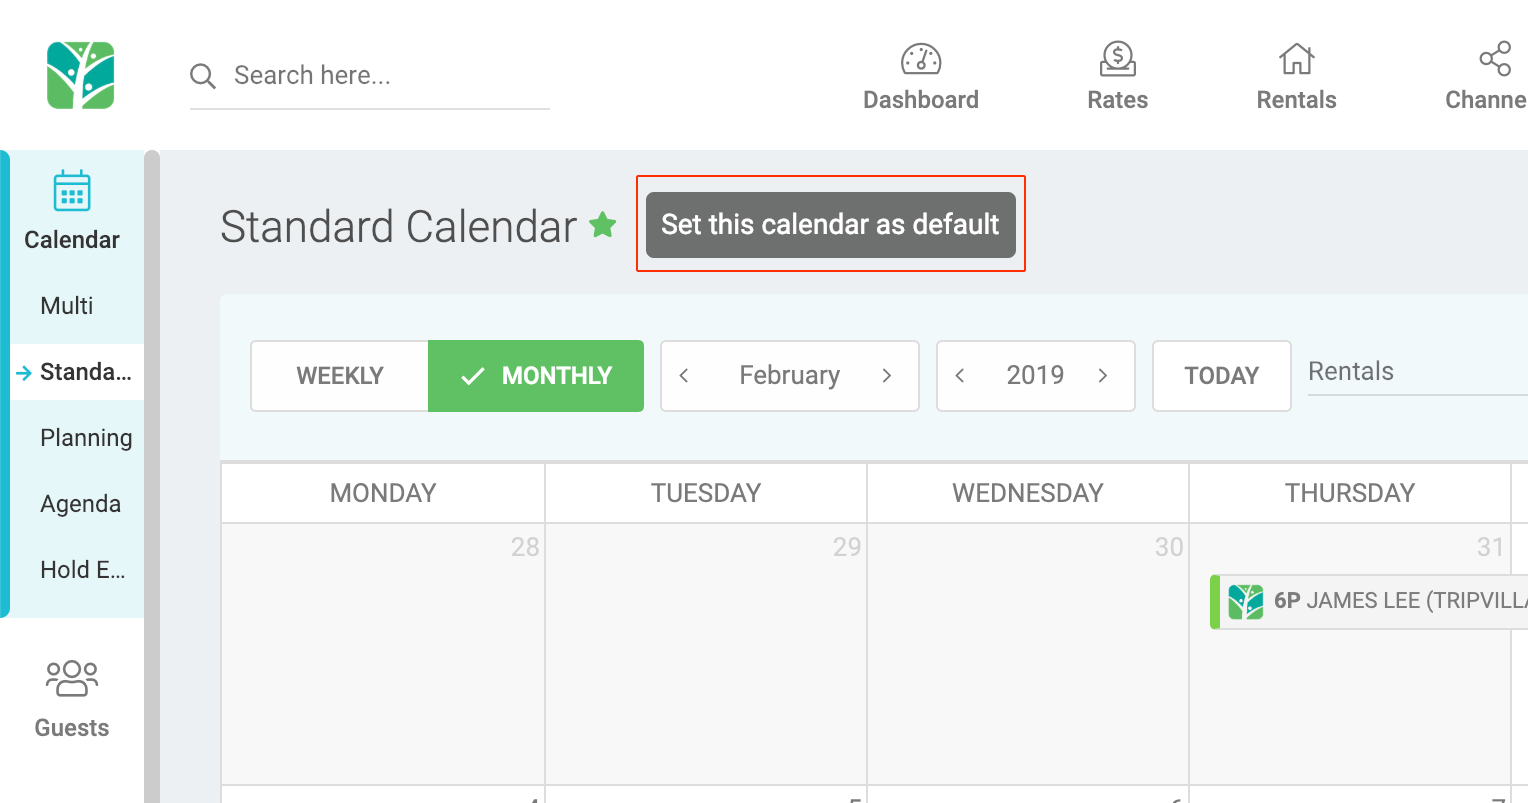 Tokeet v3 - Set preferred calendar option